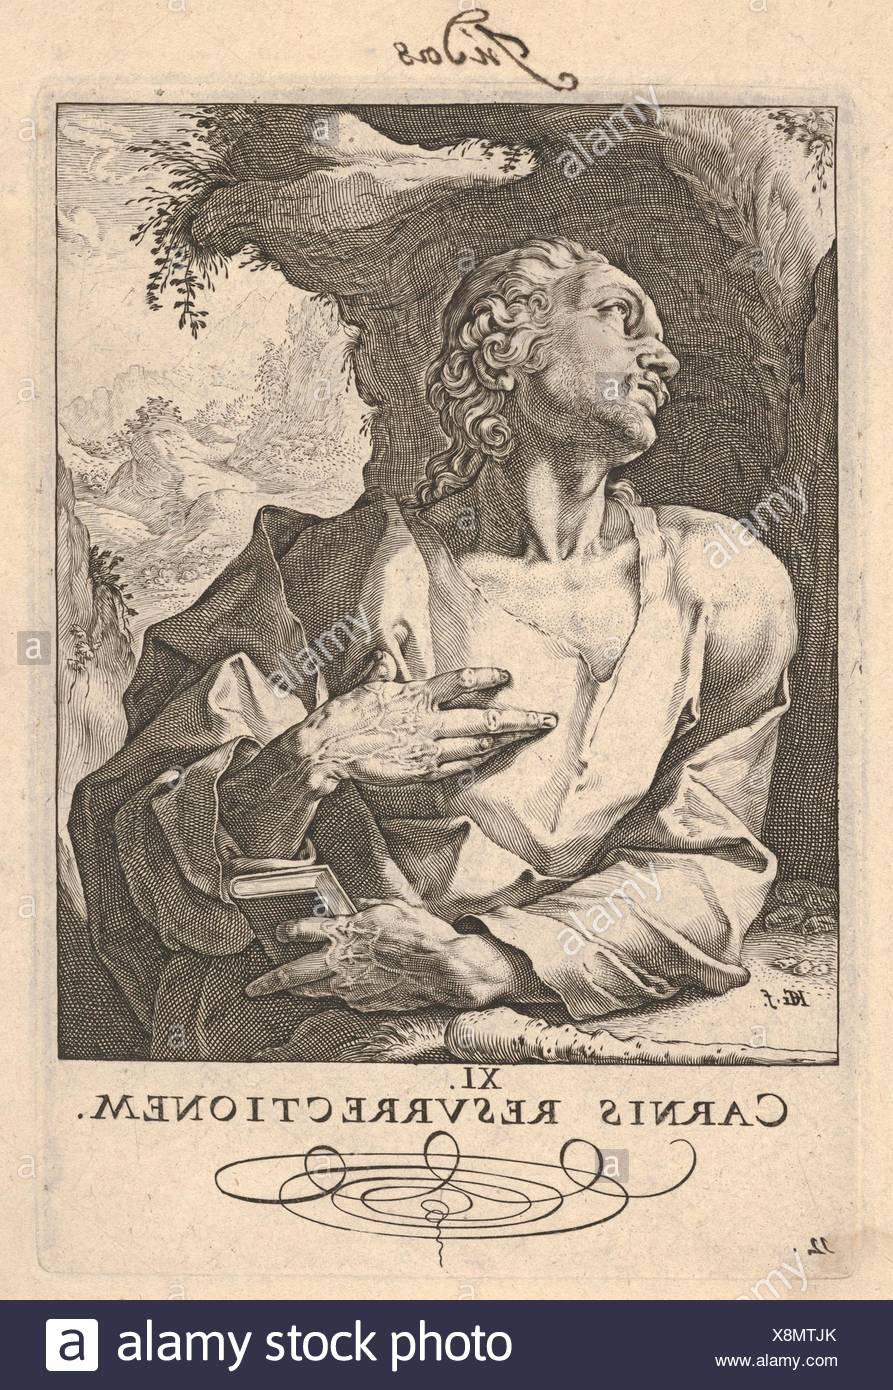 St. Jude Thaddeus, from Christ, the Apostles and St. Paul with the Creed. Series/Portfolio: Christ and the Apostles; Artist: Hendrick Goltzius - Stock Image